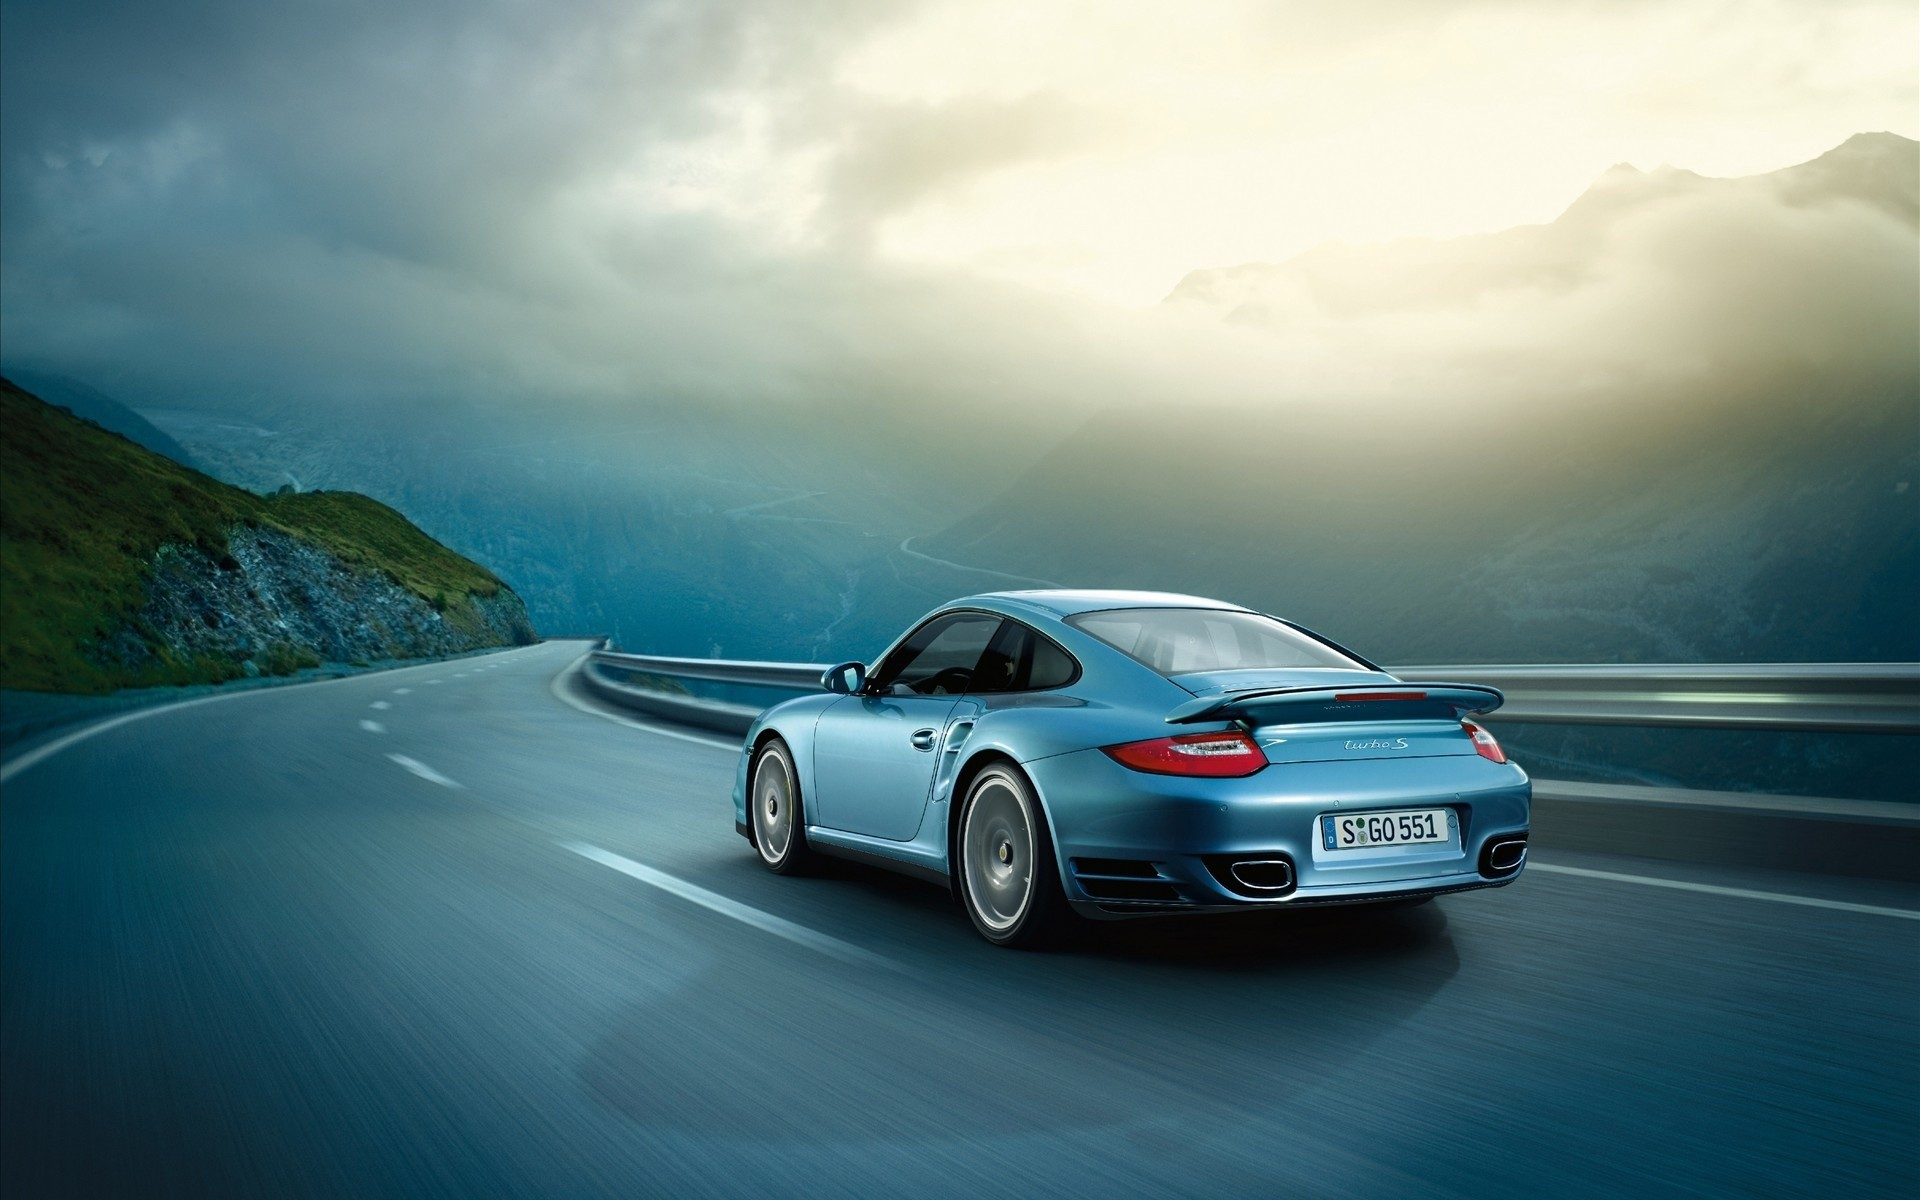 1920x1200 2011 Porsche 911 Turbo S Mountain Road Desktop Wallpaper